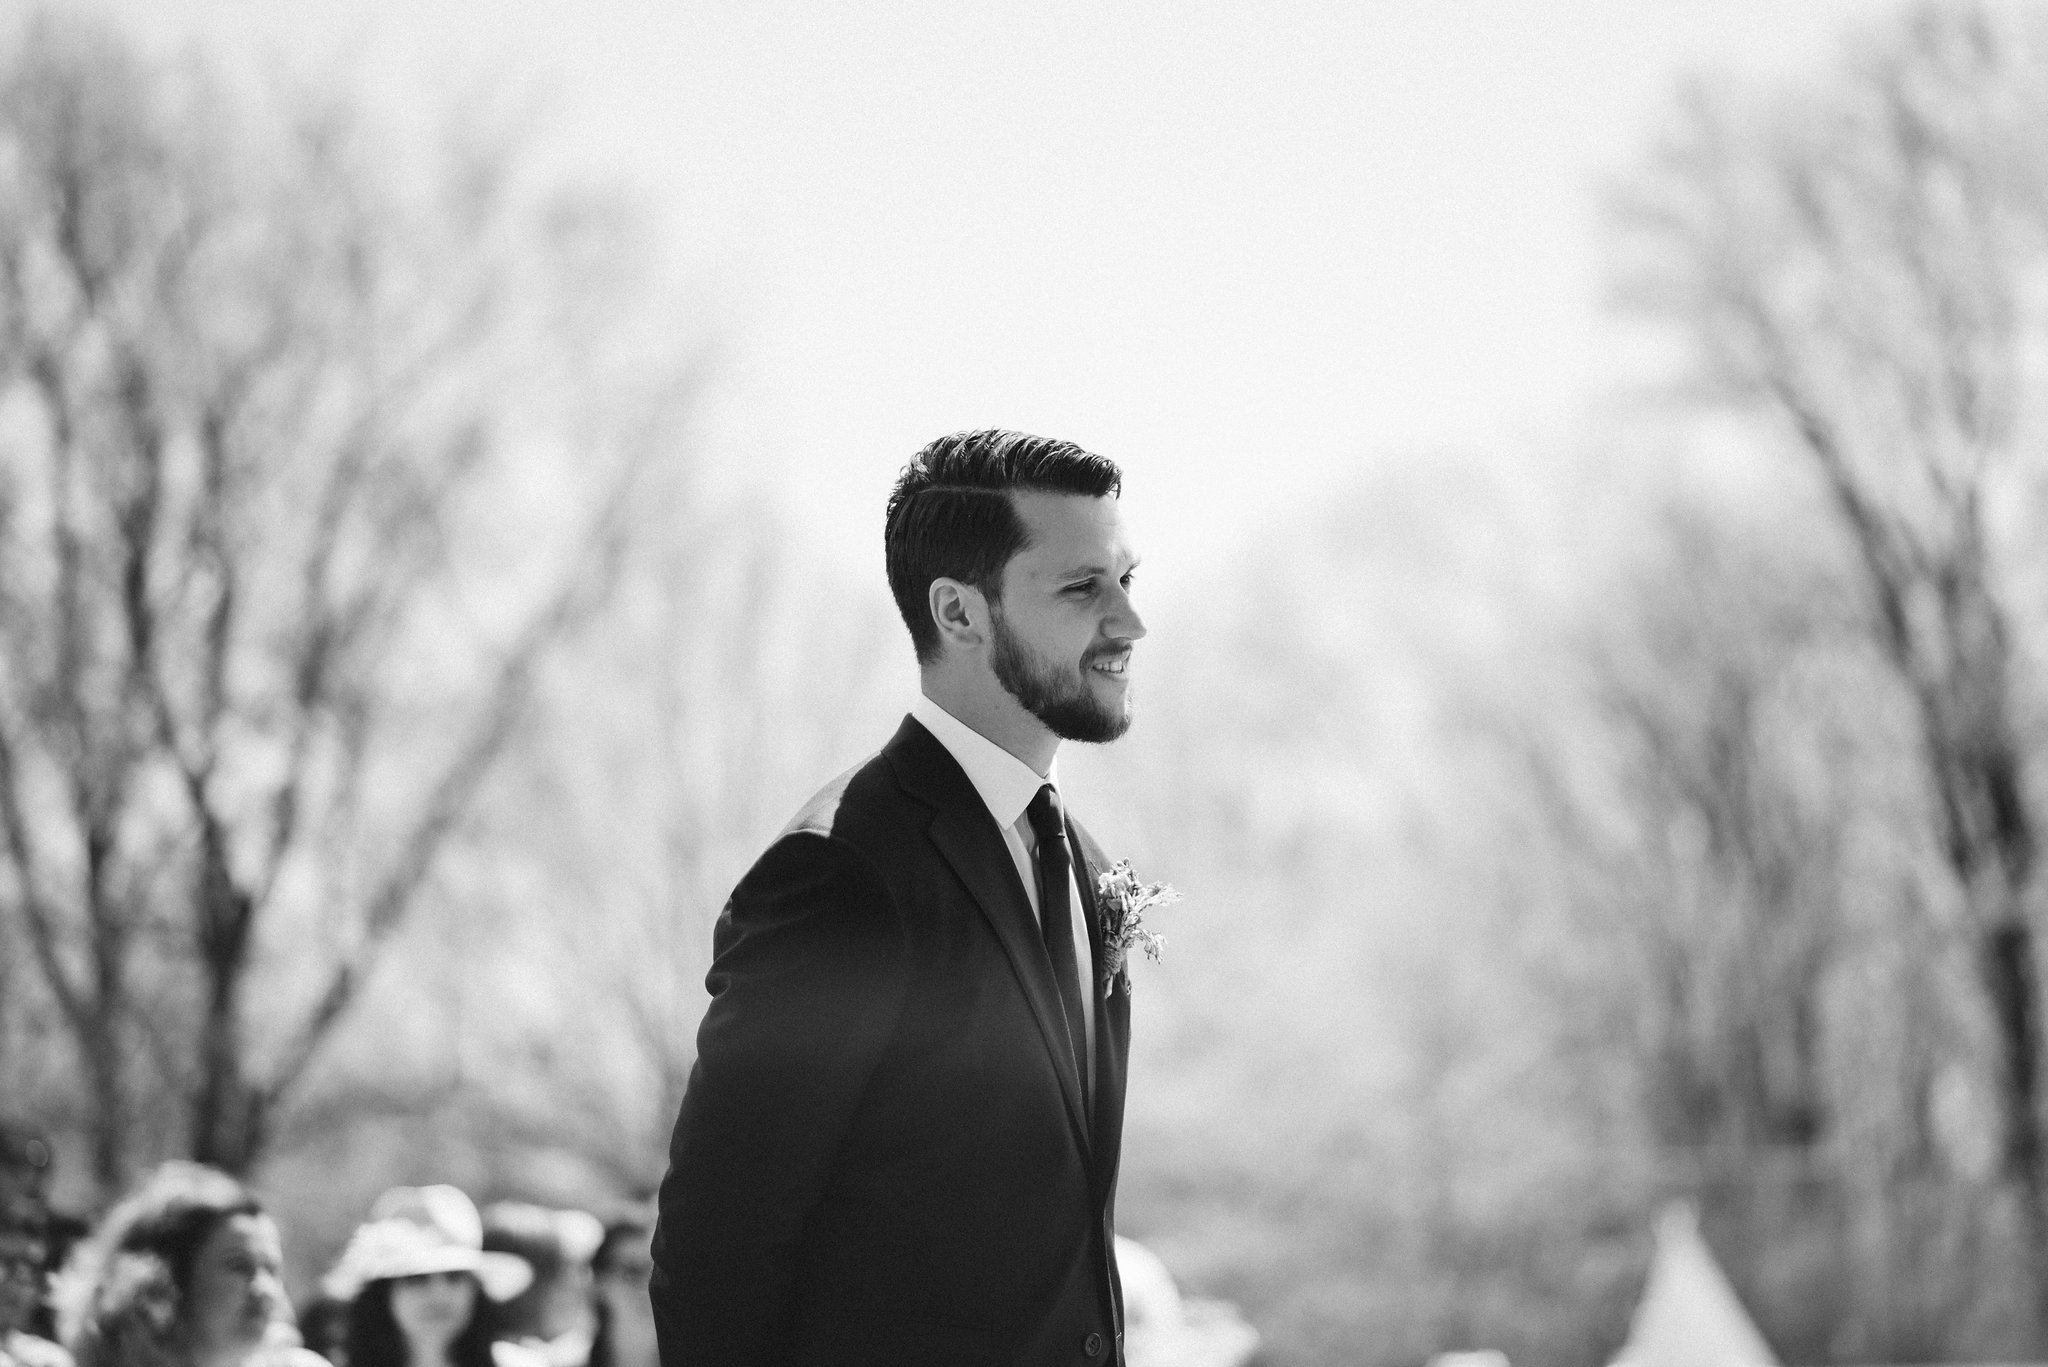 Spring Outdoor Wedding, Park, Baltimore Wedding Photographer, DIY, Classic, Upcycled, Garden Party, Romantic, Groom Waiting at the End of the Aisle, Black and White Photo, SuitSupply